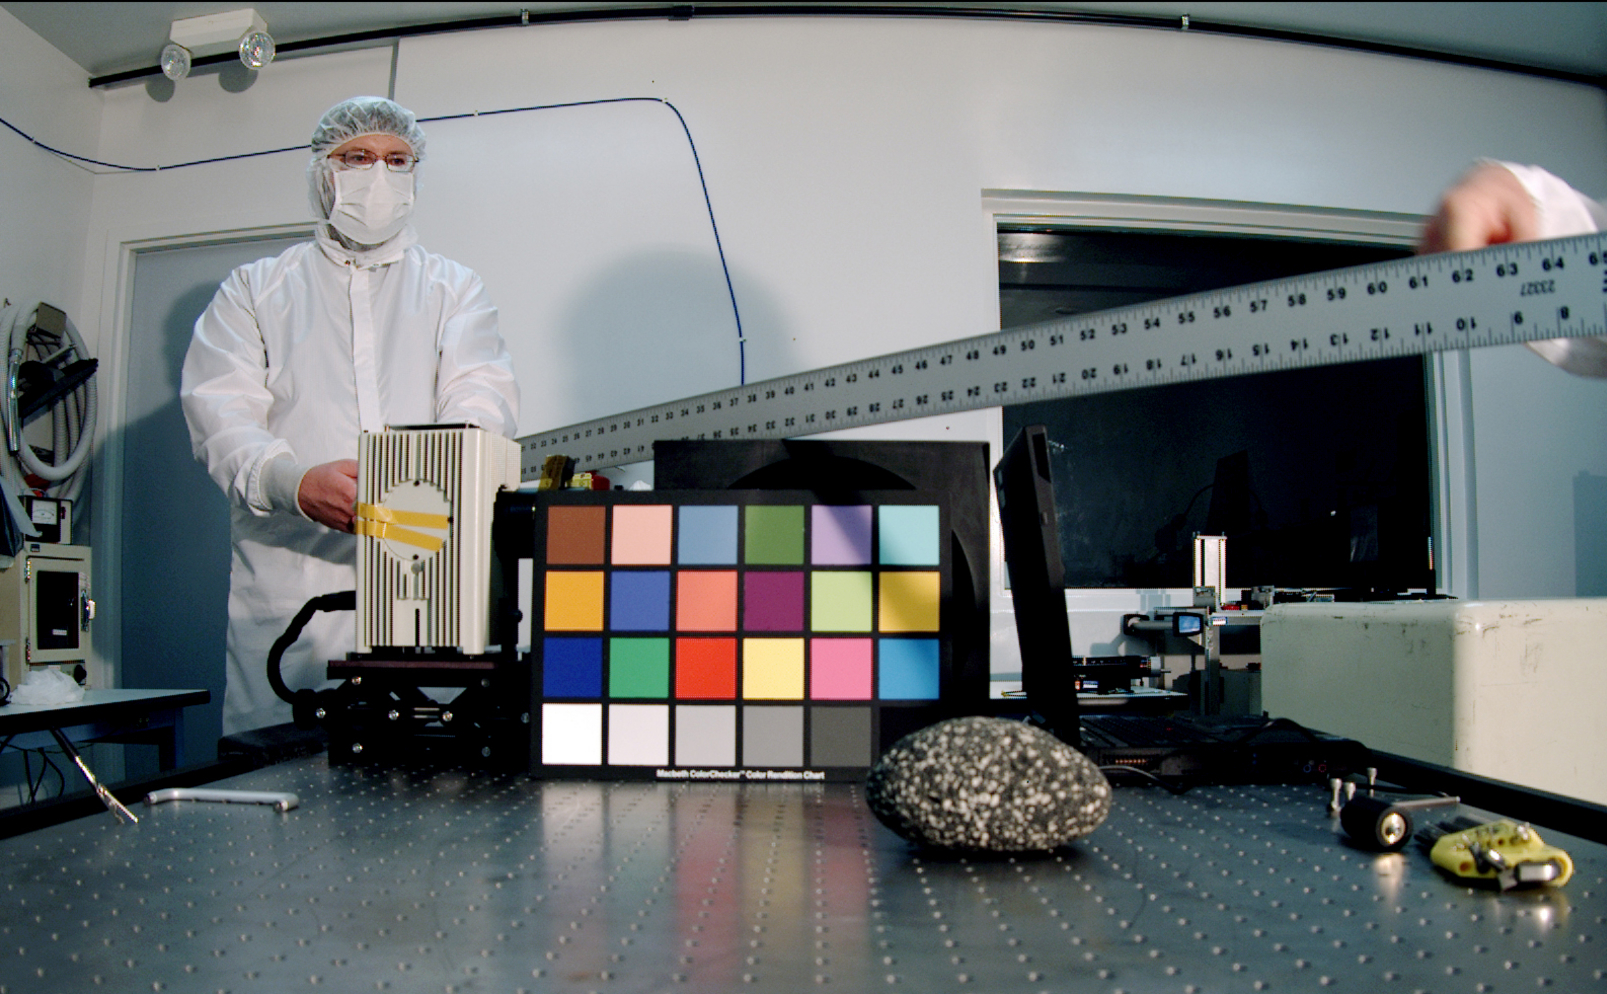 The Mars Descent Imager for NASA's Mars Science Laboratory took this image inside the Malin Space Science Systems clean room in San Diego, Calif., during calibration testing of the camera in June 2008.